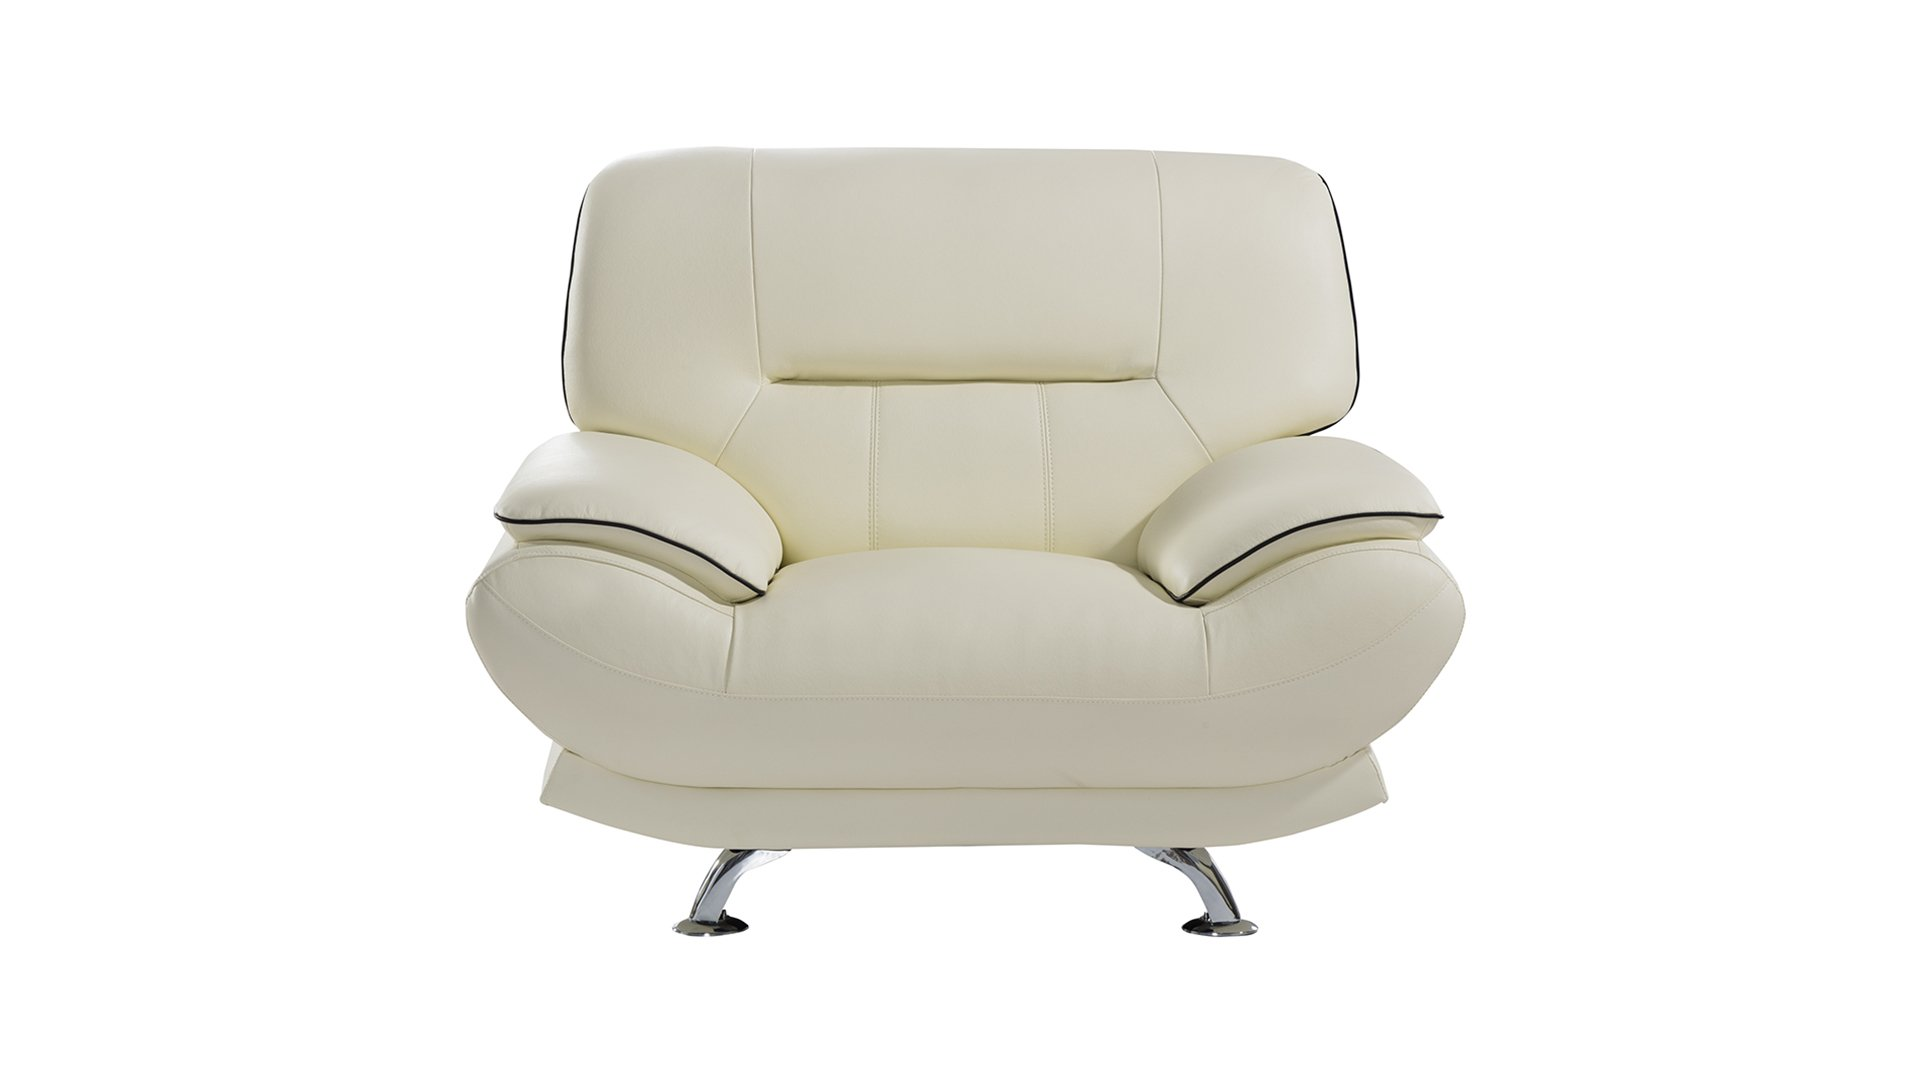 American Eagle Furniture Arcadia Collection Genuine Leather Living Room Armchair with Pillow Top Armrests, Ivory